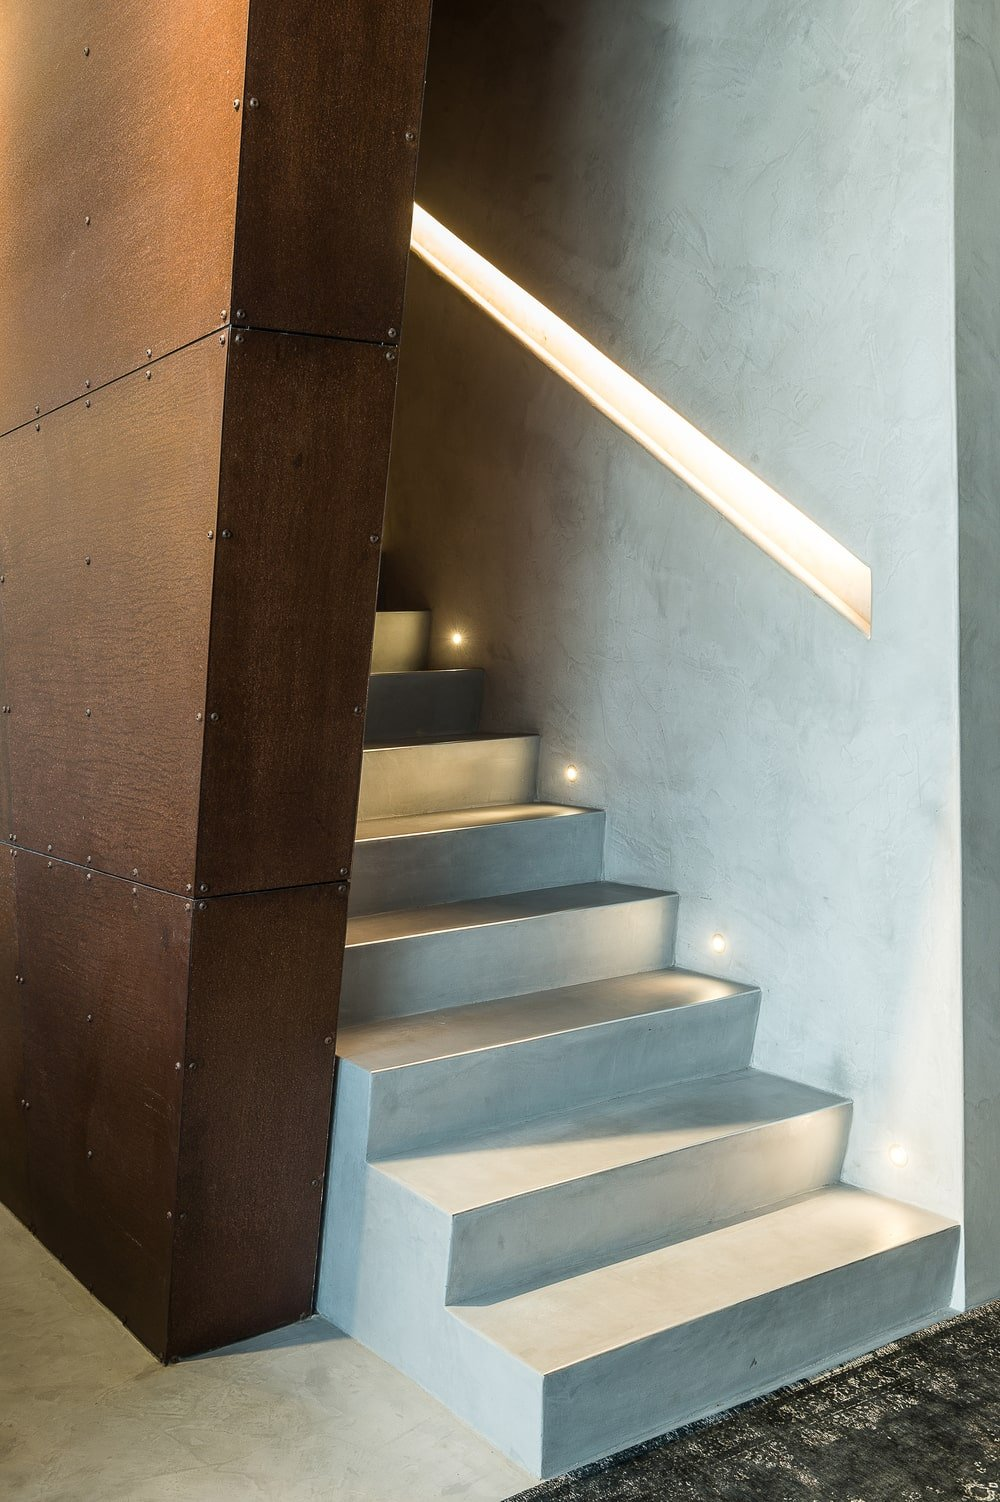 This is a close look at the staircase that has a wood paneled wall on the side and modern lighting on the other side.